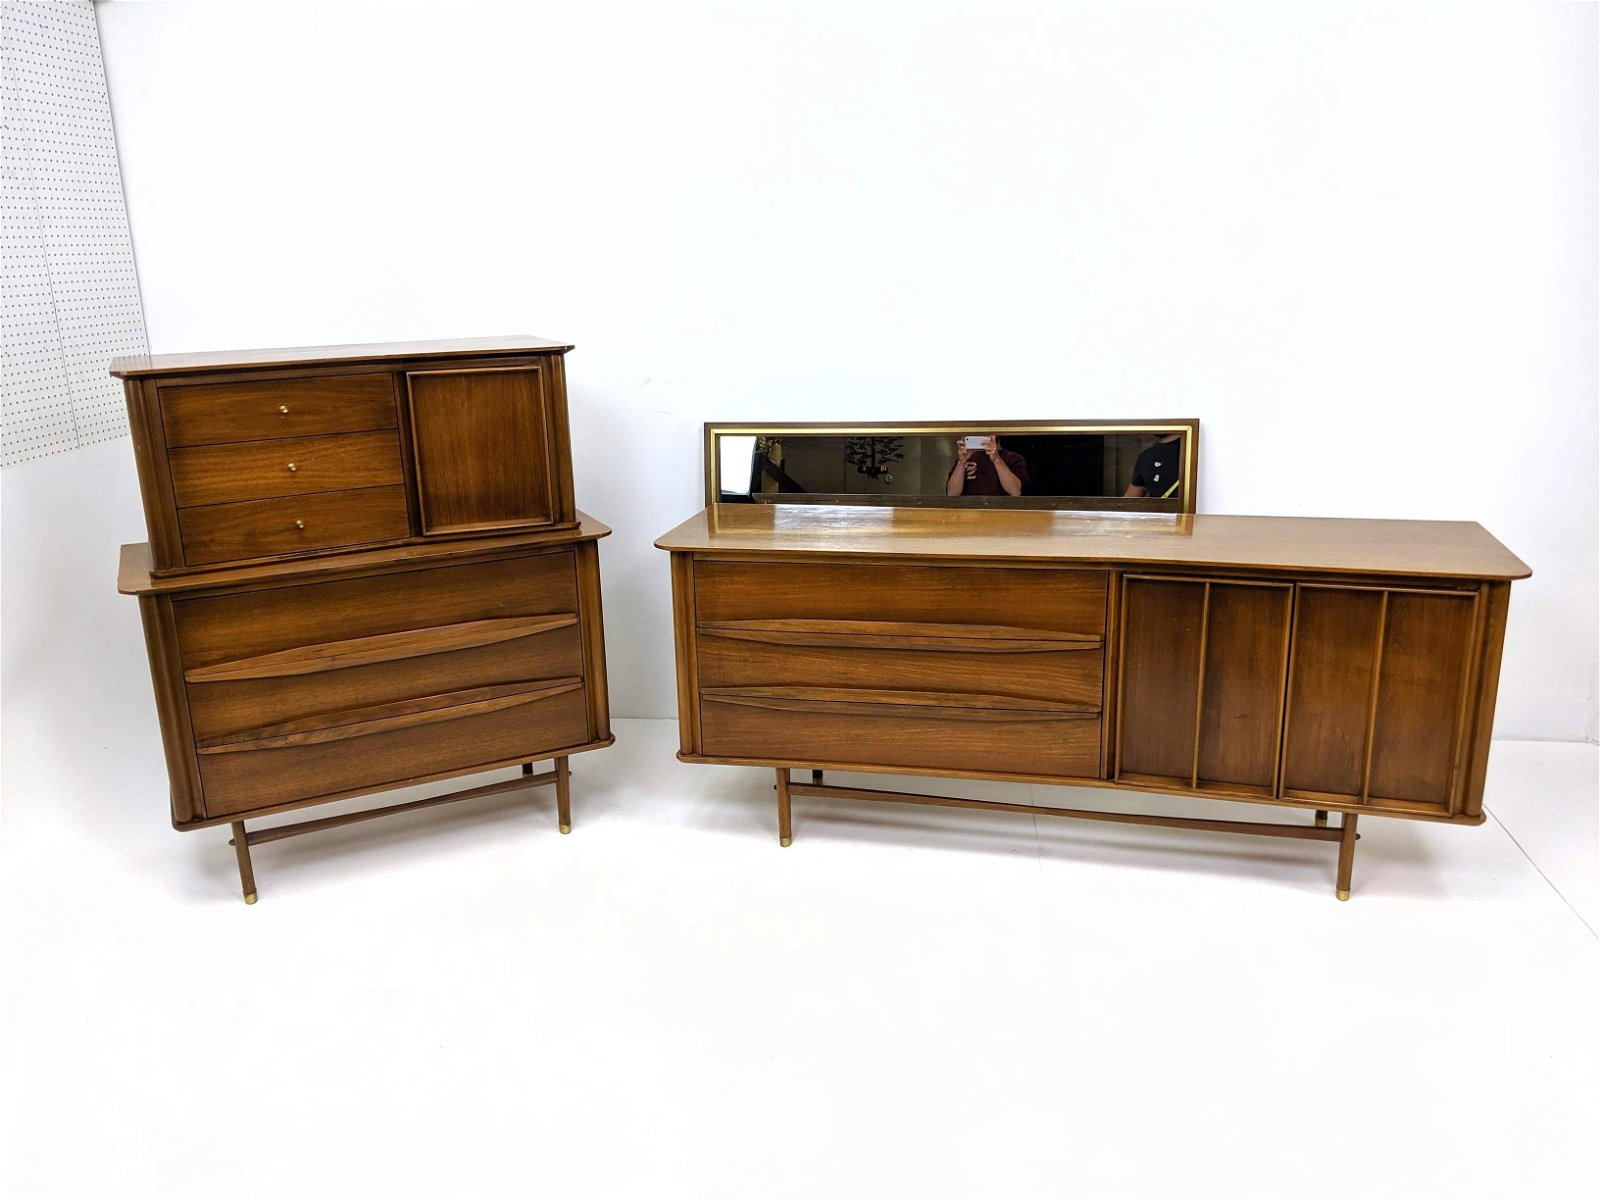 2pc DANIEL JONES American Modern Walnut Dressers. Tall